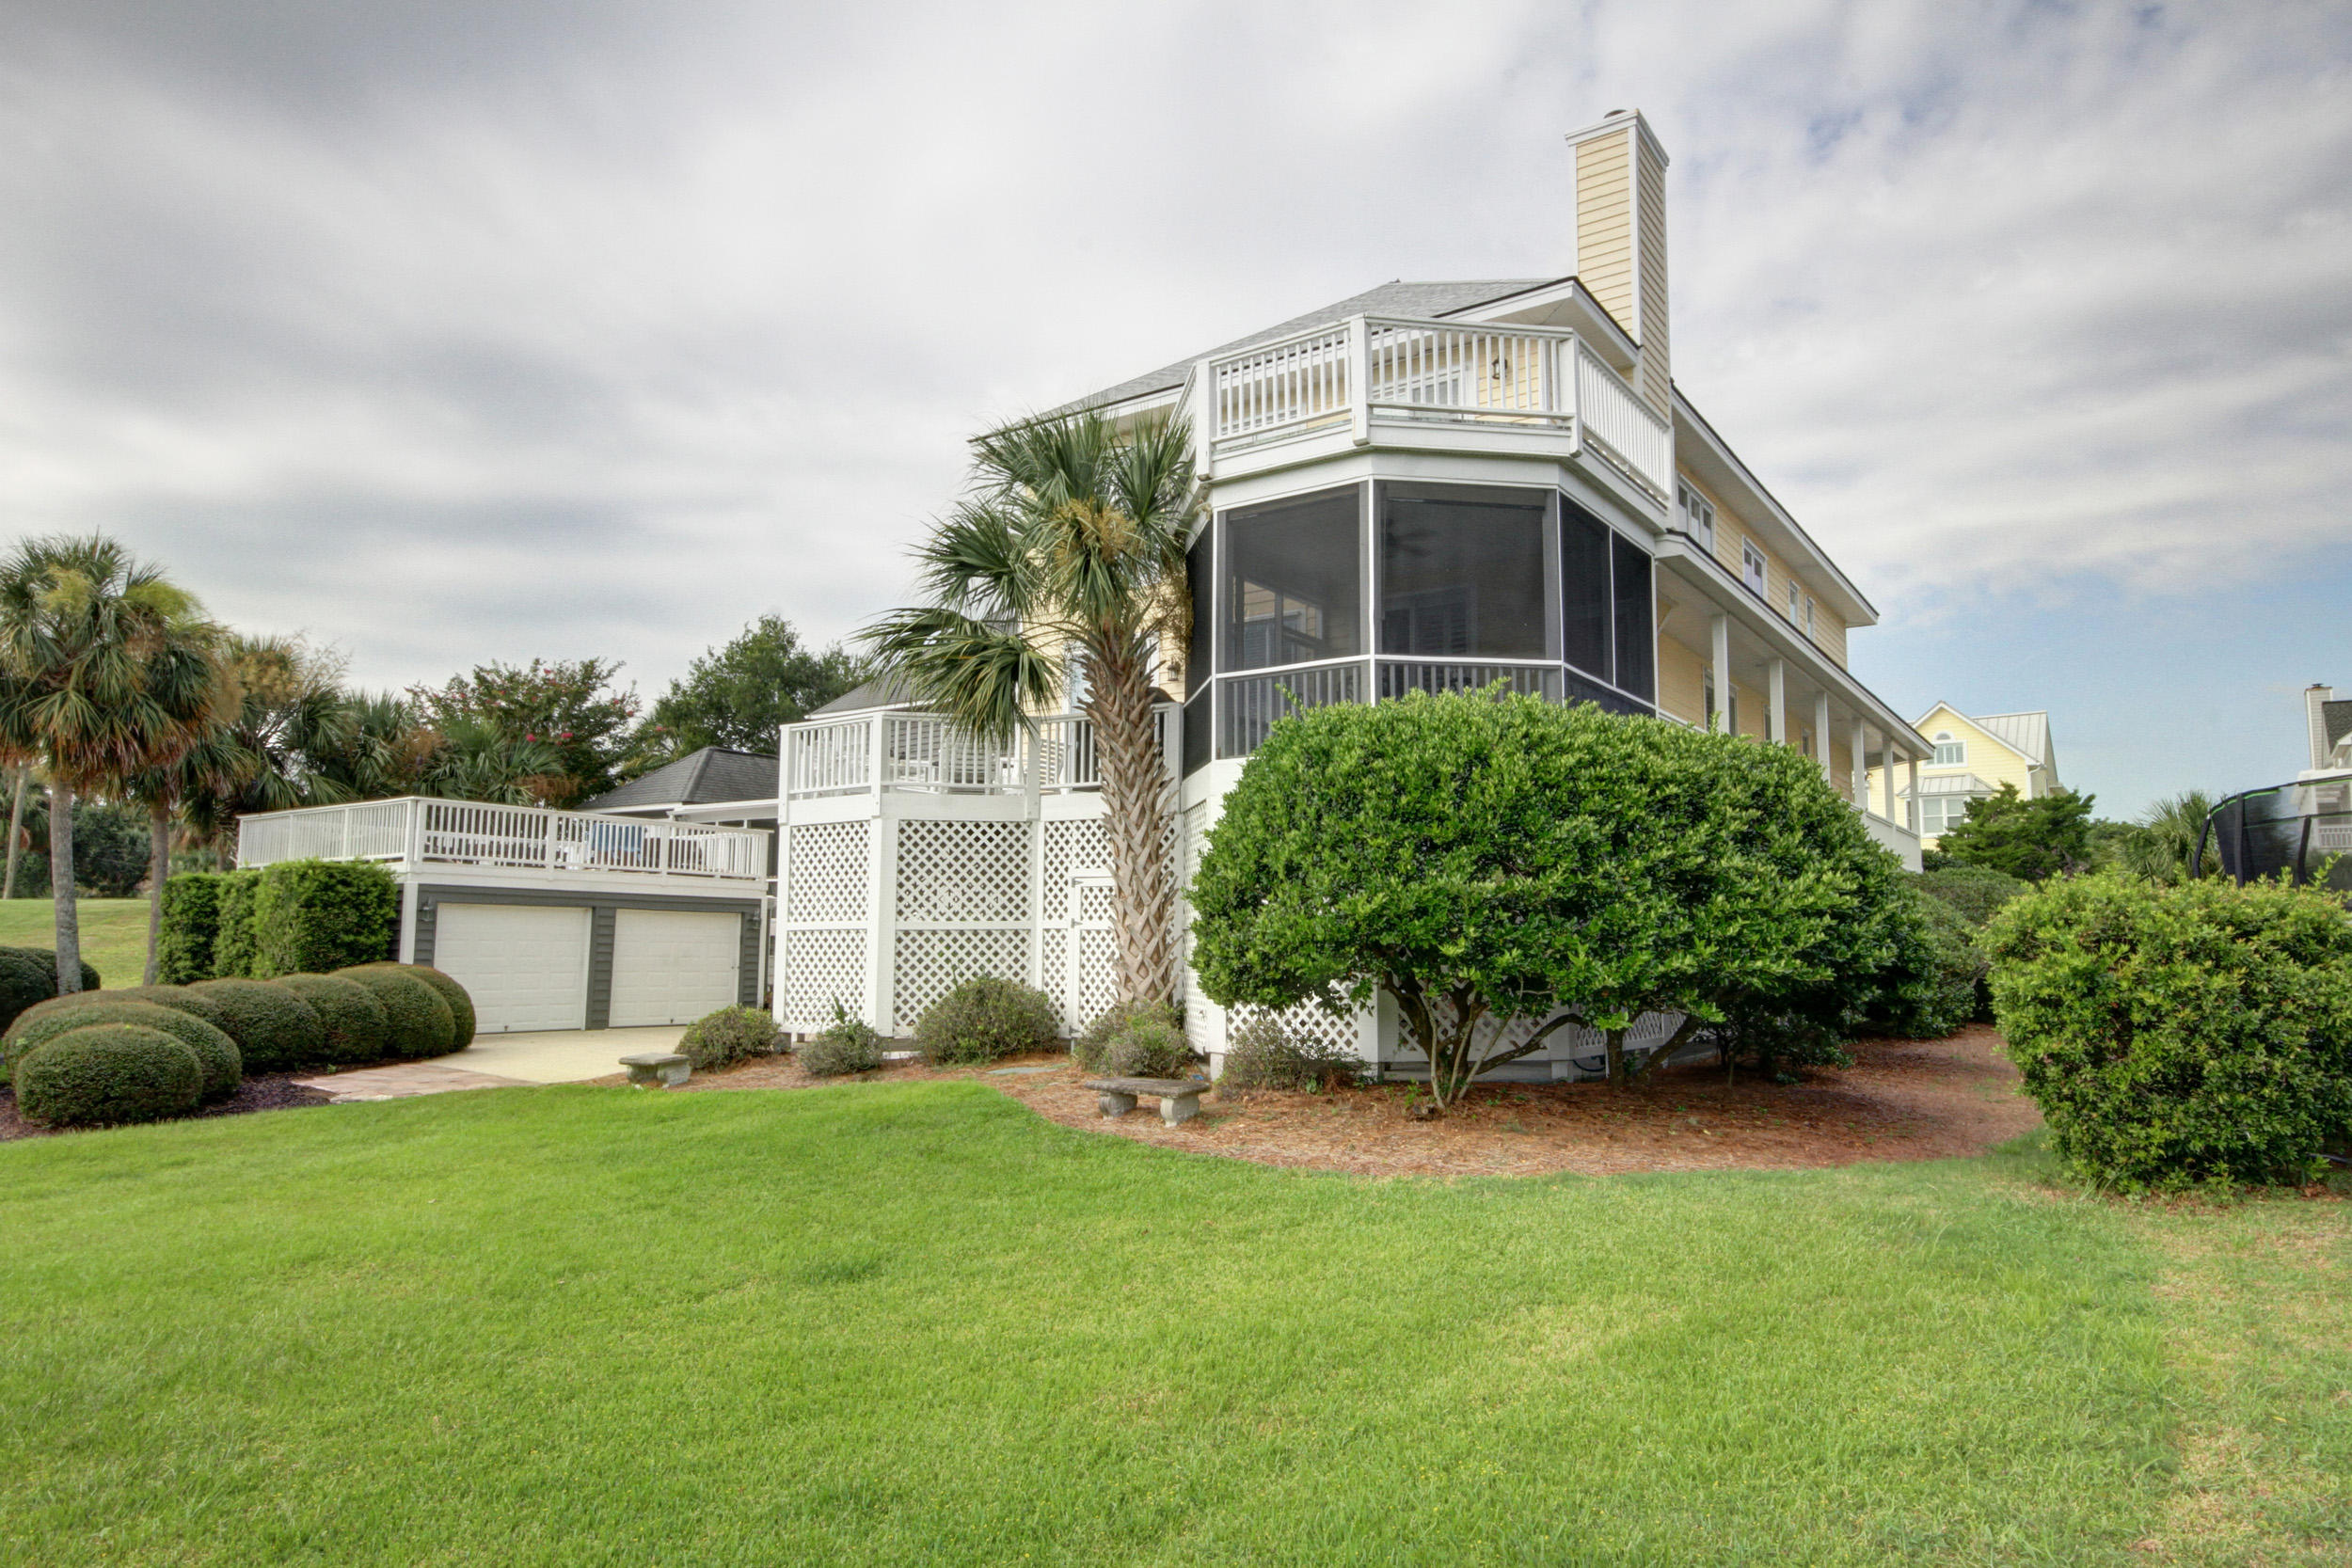 Wild Dunes Homes For Sale - 2 Morgan Pl, Isle of Palms, SC - 4